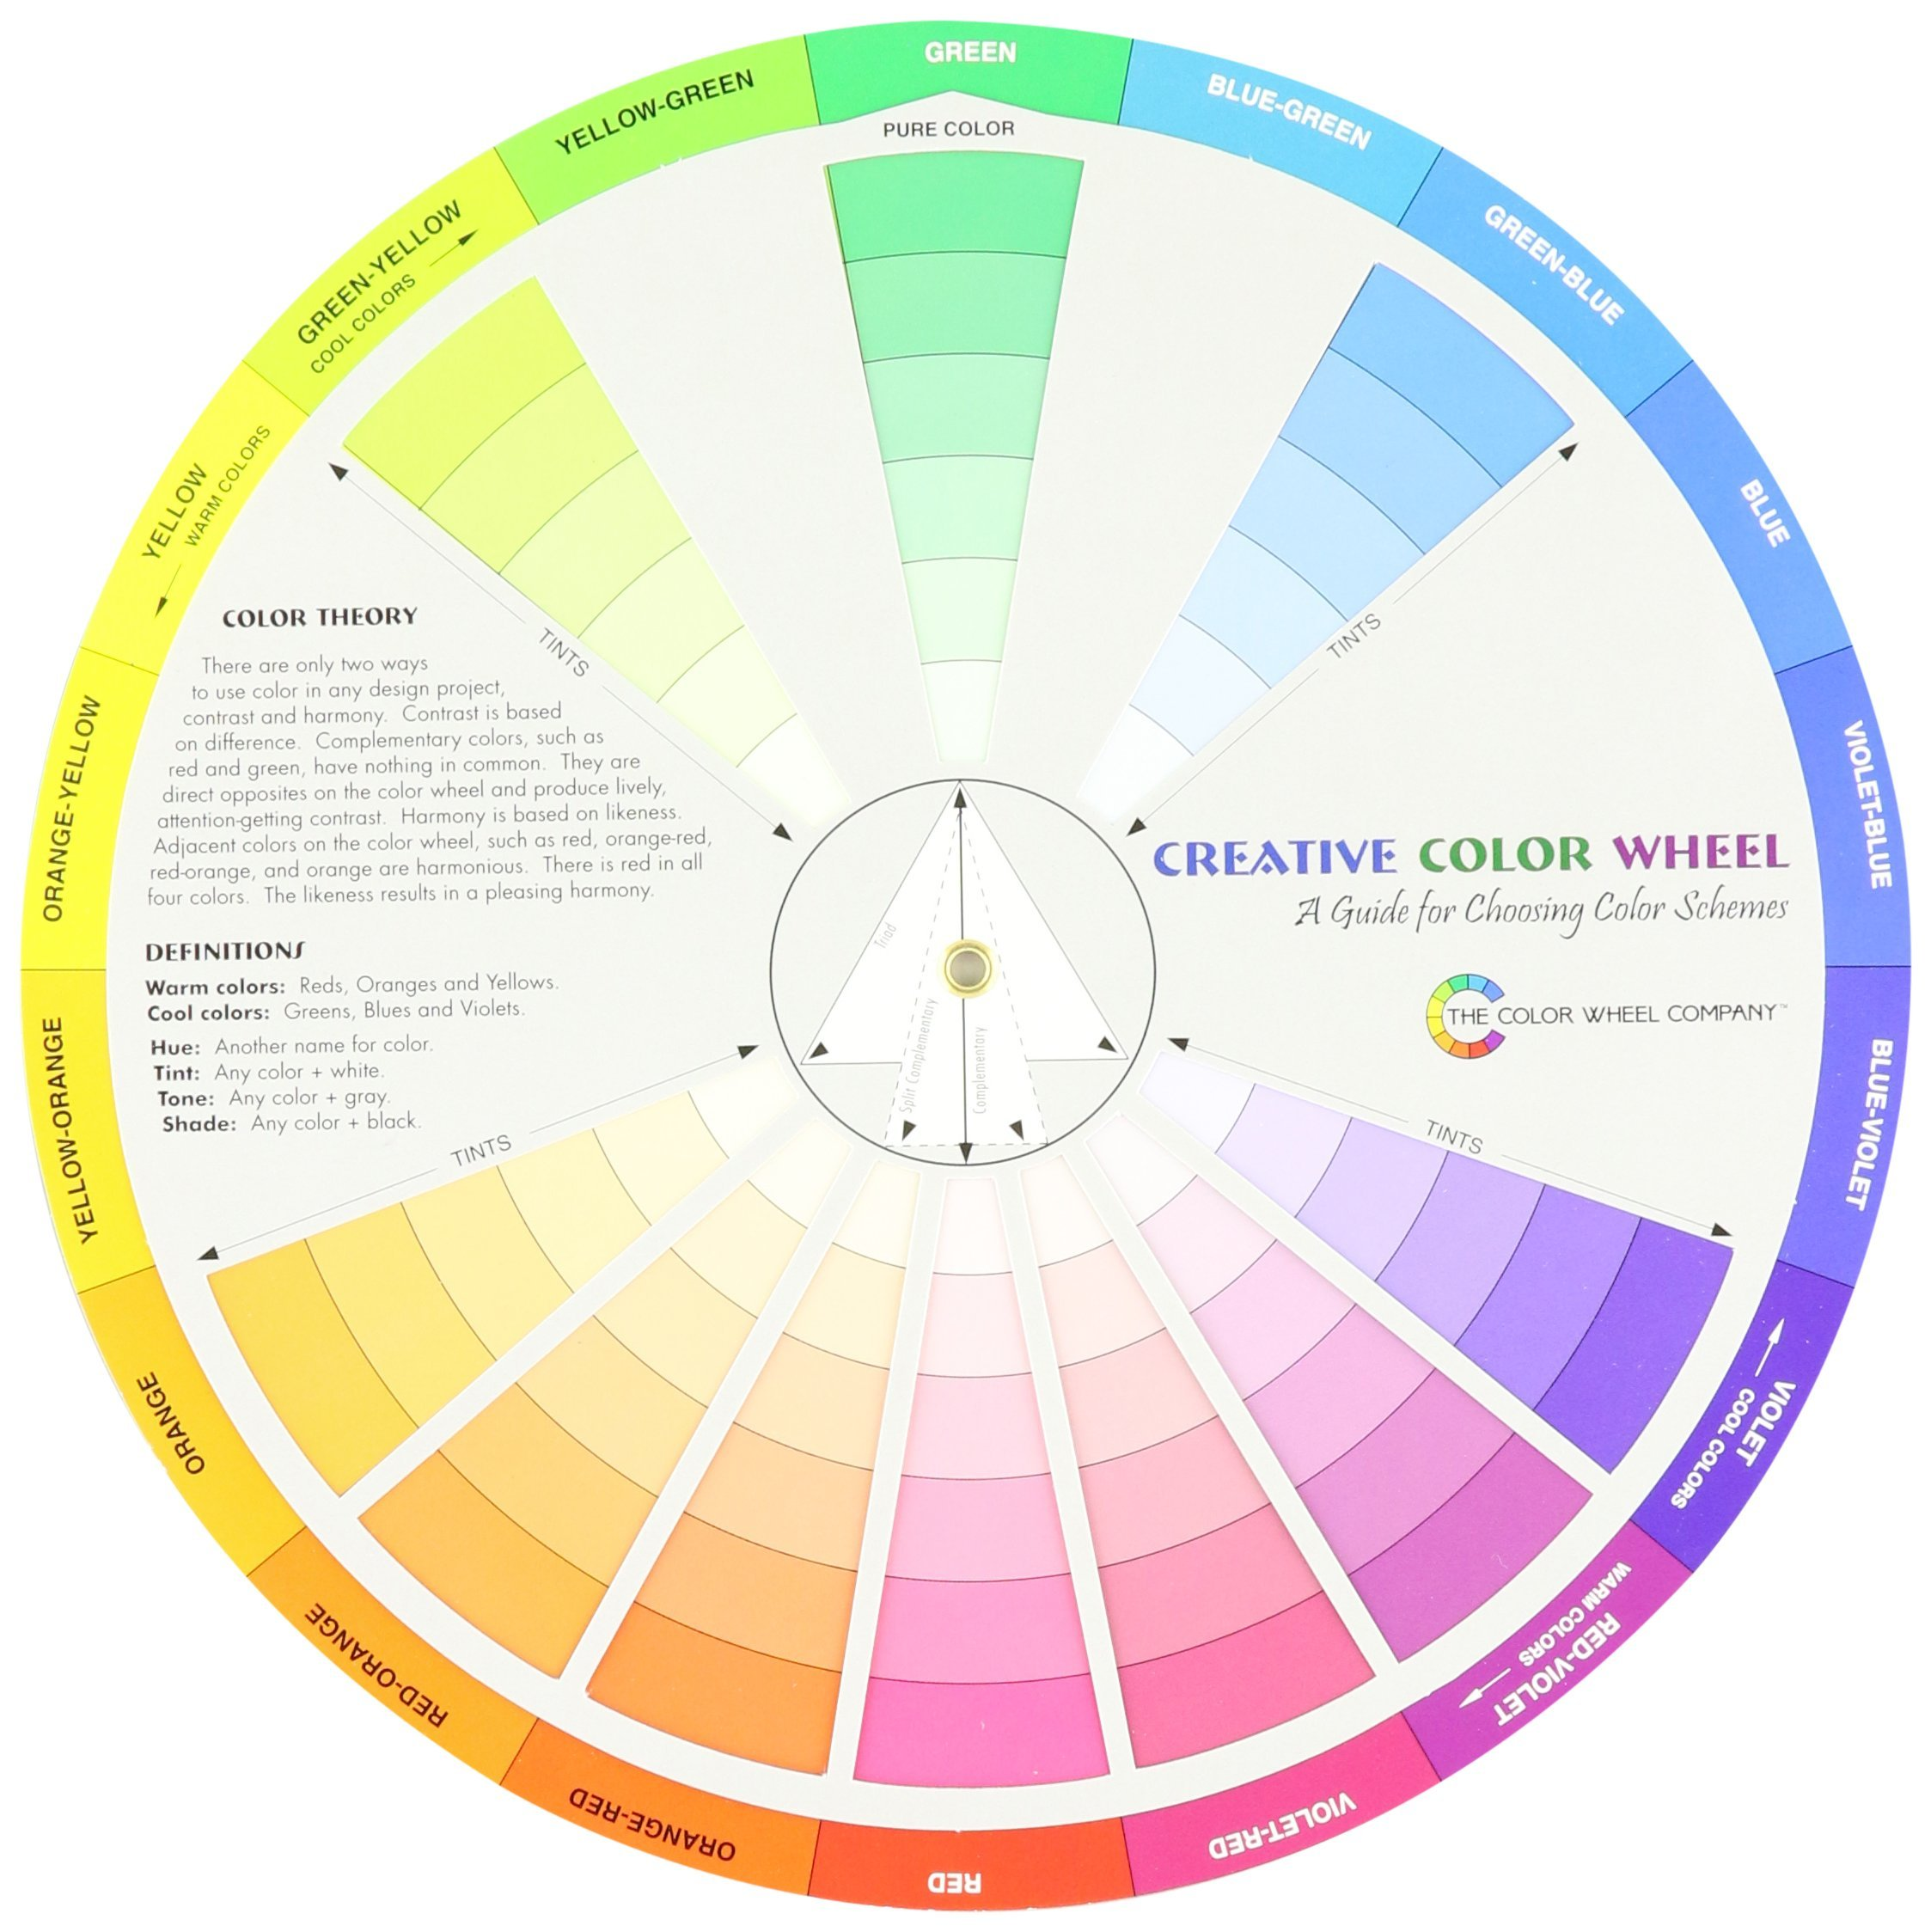 Galleon Creative Color Wheel